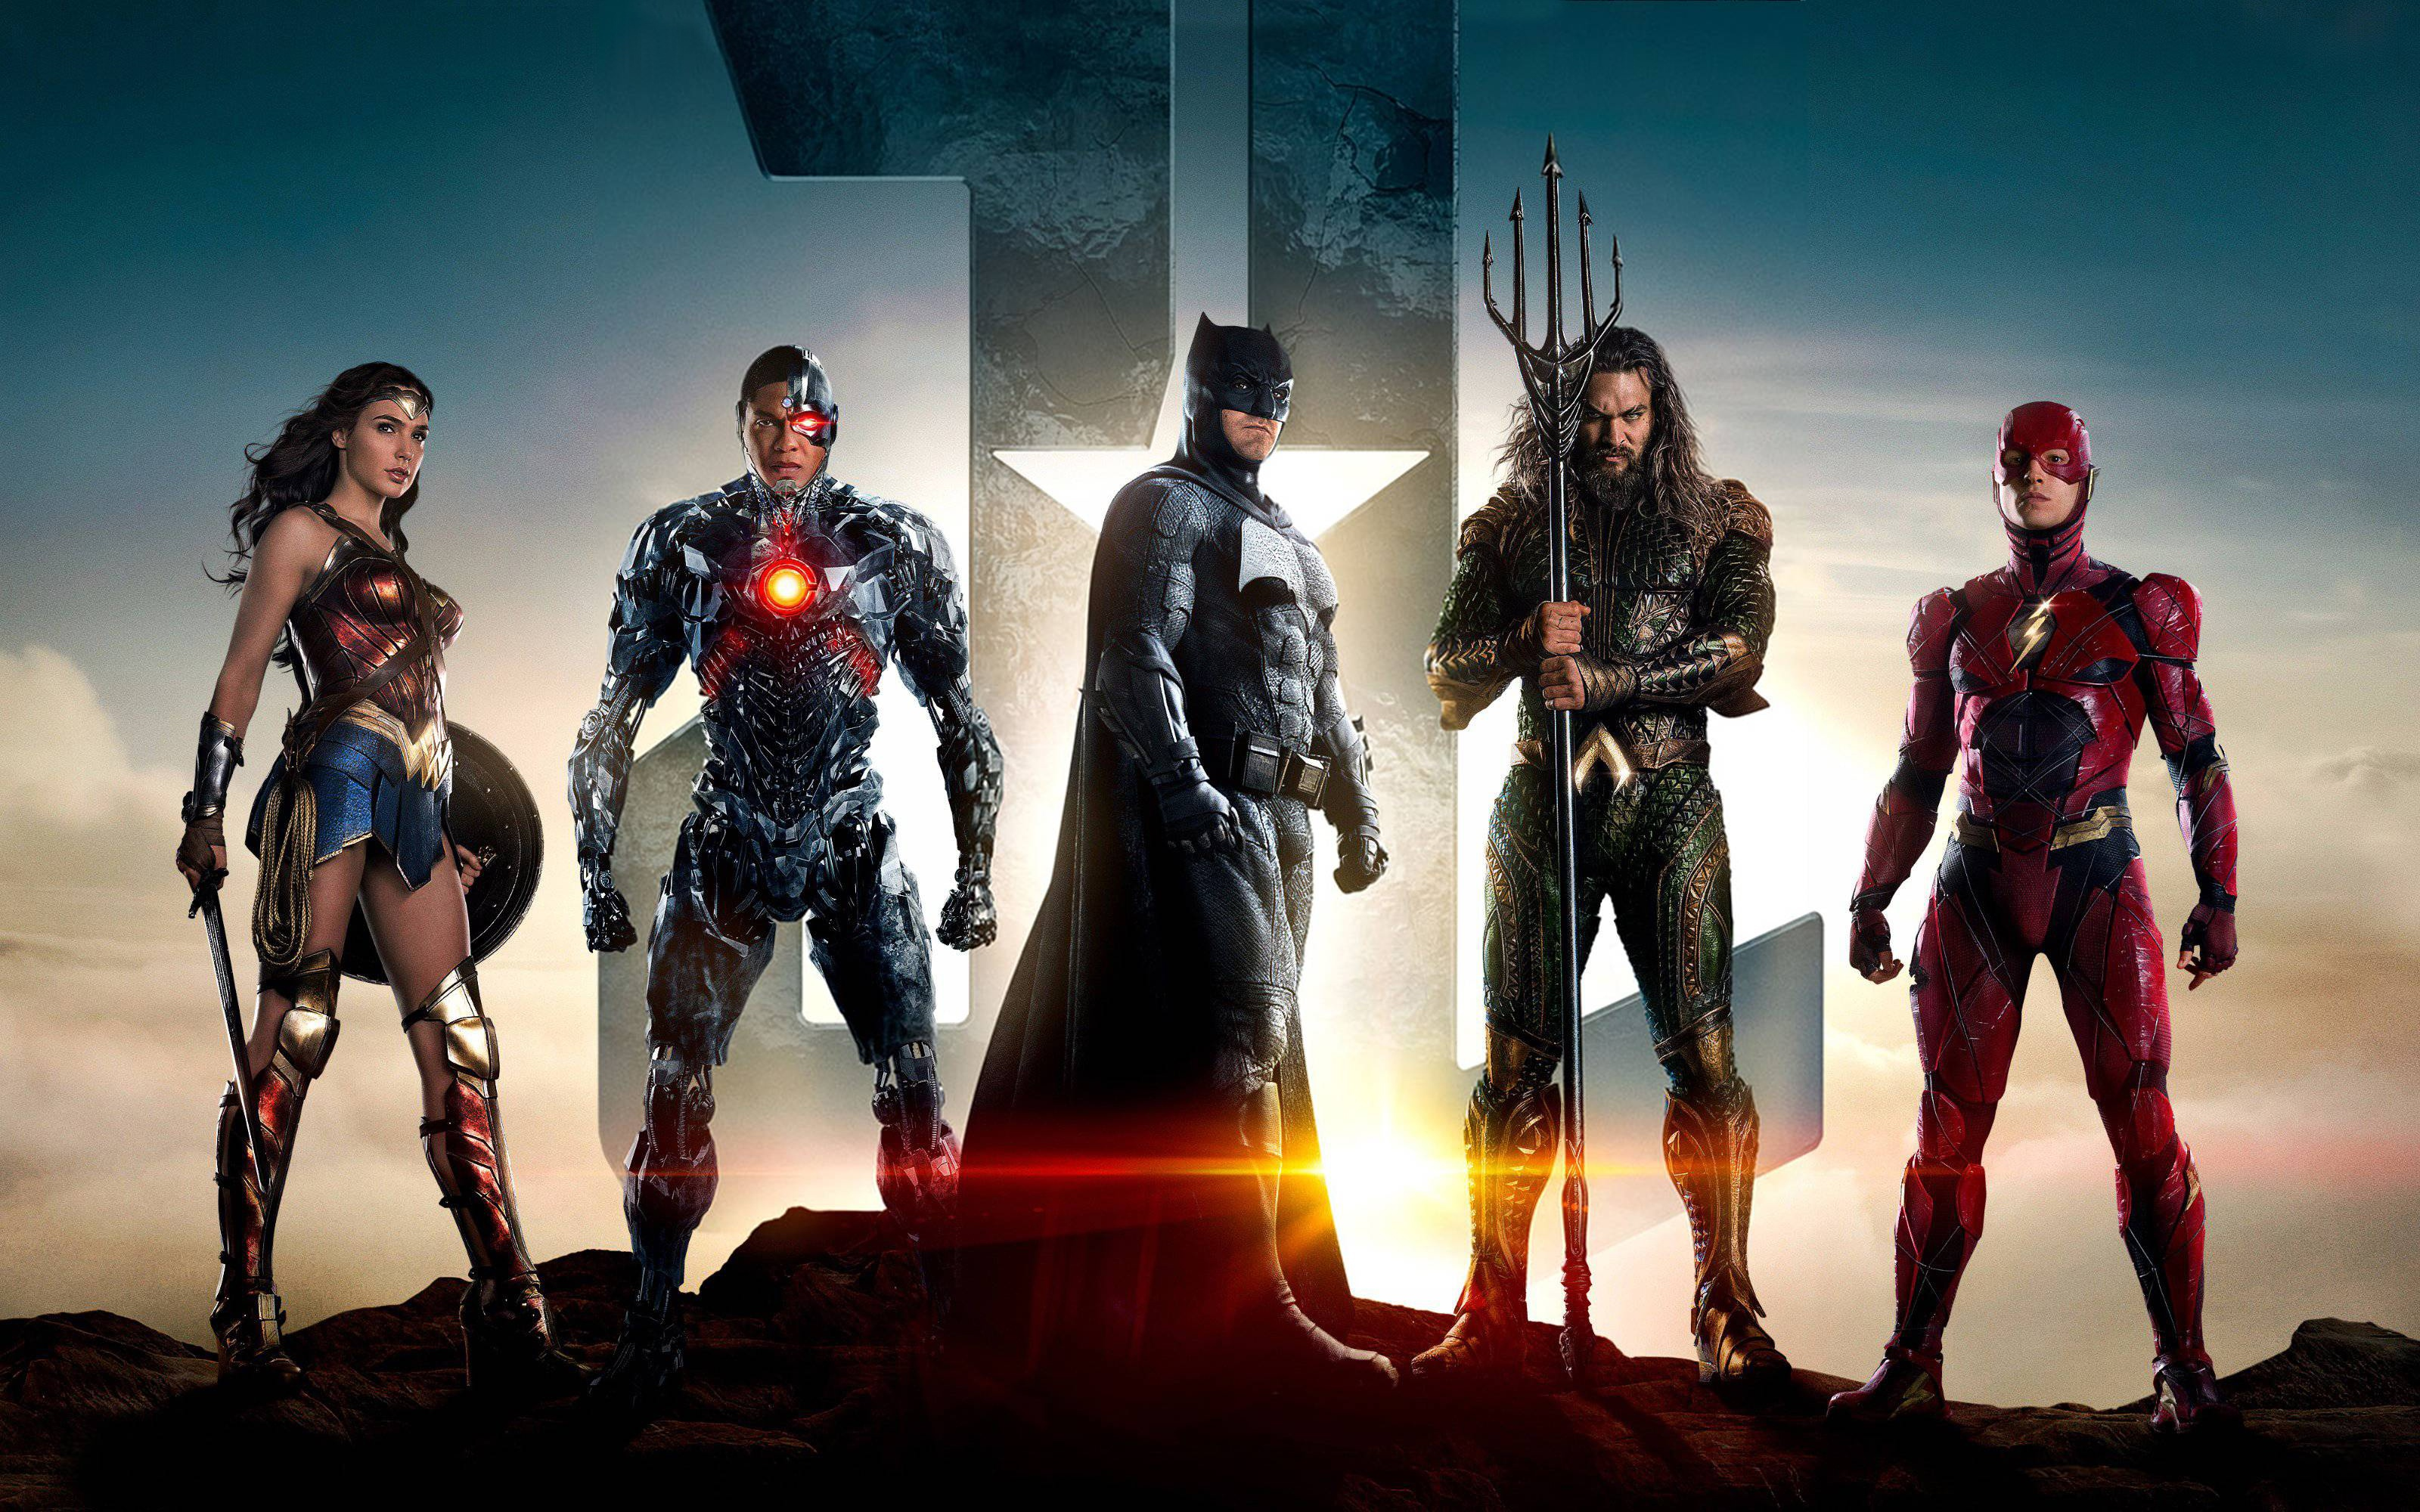 Hd wallpaper justice league - Hd Wallpaper Background Id 815404 3200x2000 Movie Justice League